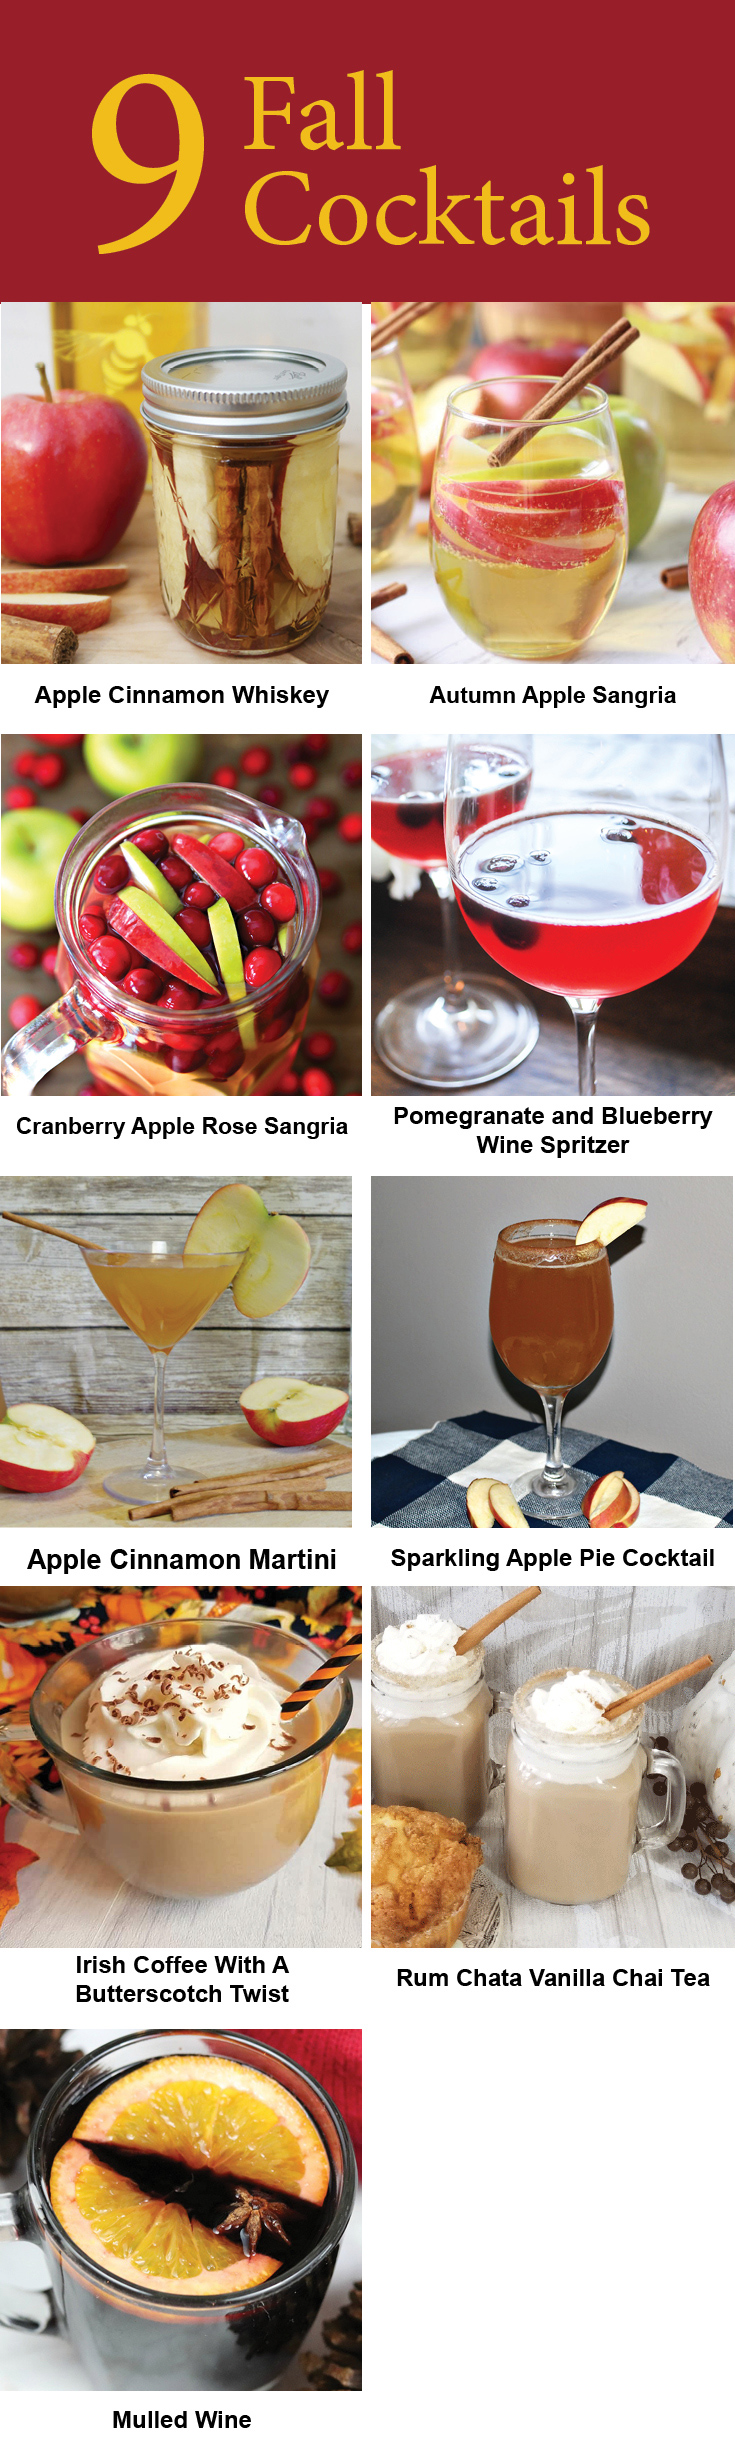 Fall Cocktails to make during these cool autumn months.